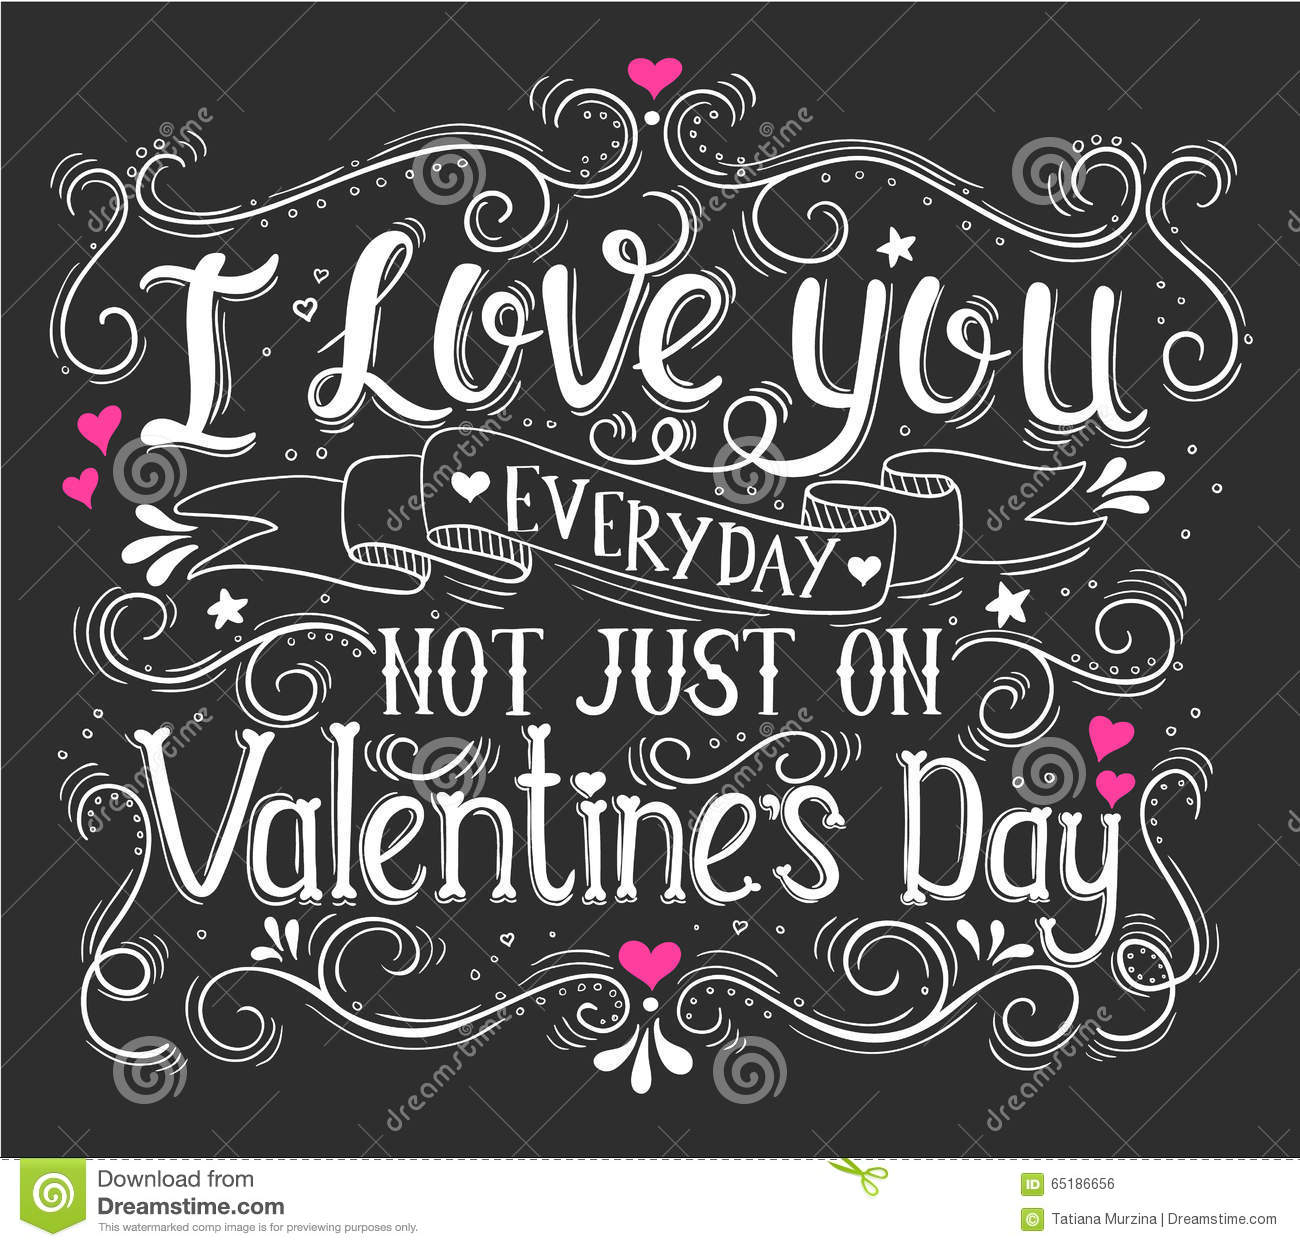 Image result for everyday valentines day